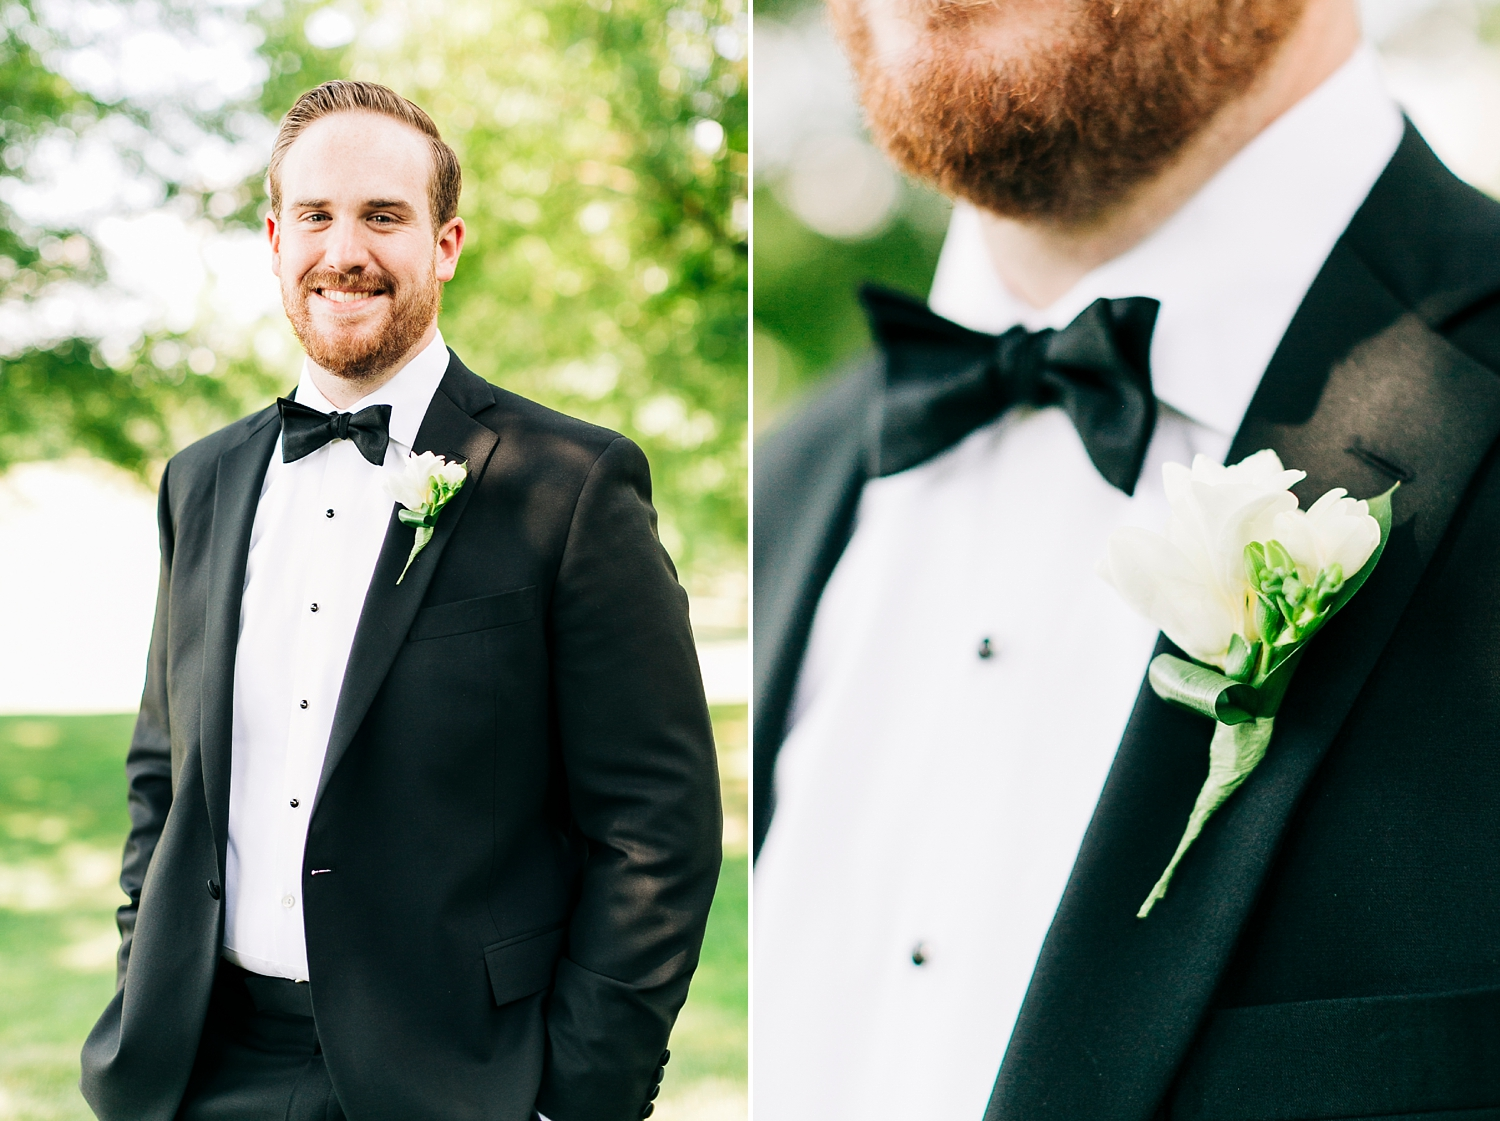 wedding-danville-groom-portrait.jpg